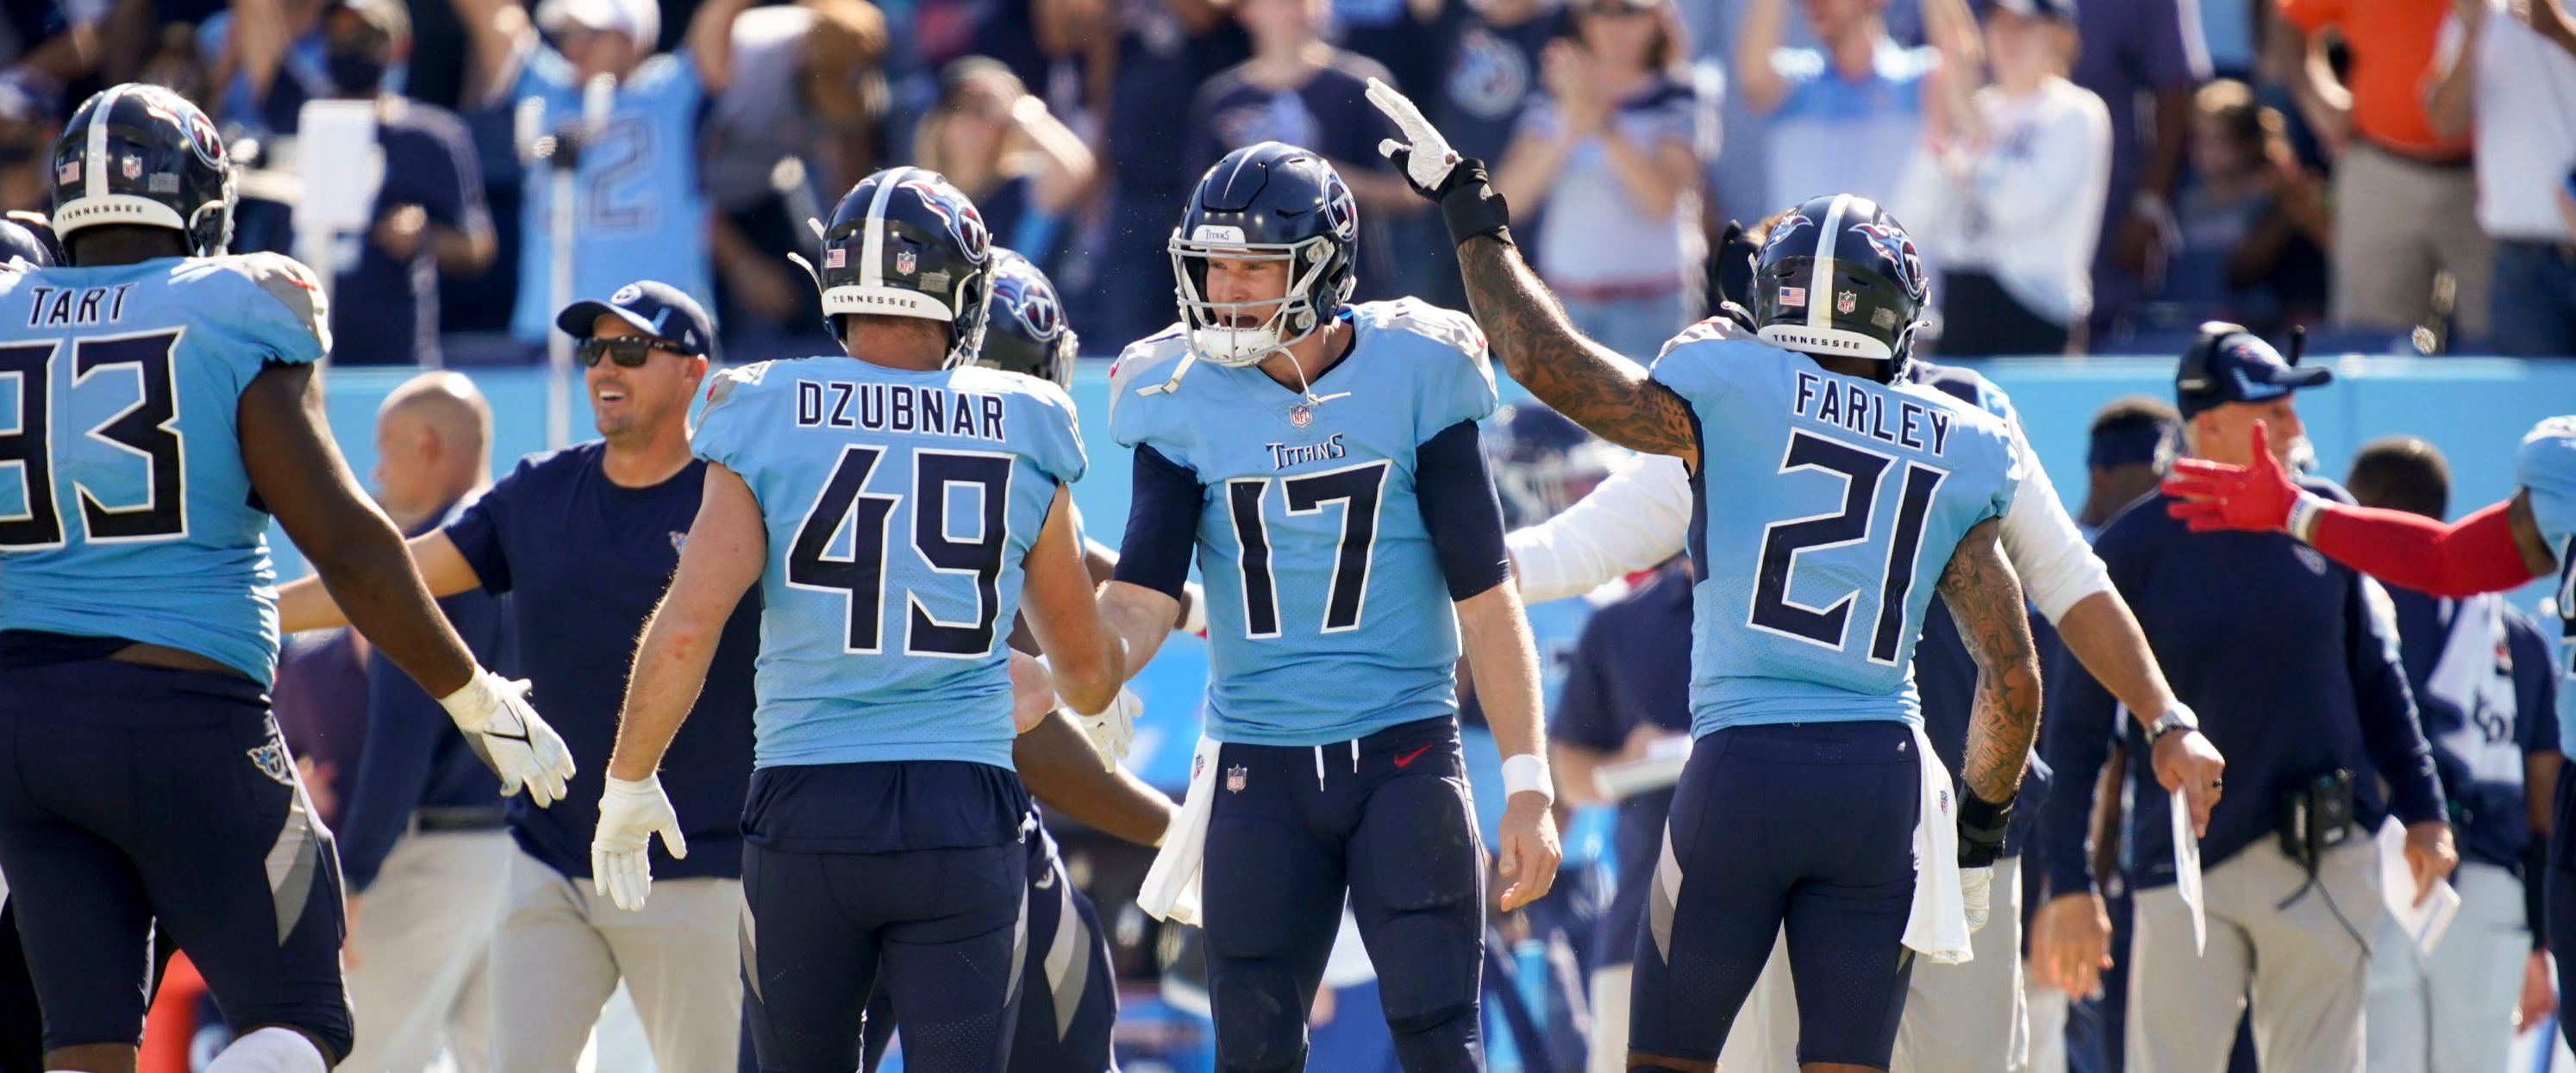 Titans - Colts recap: Our worst is better than their best!